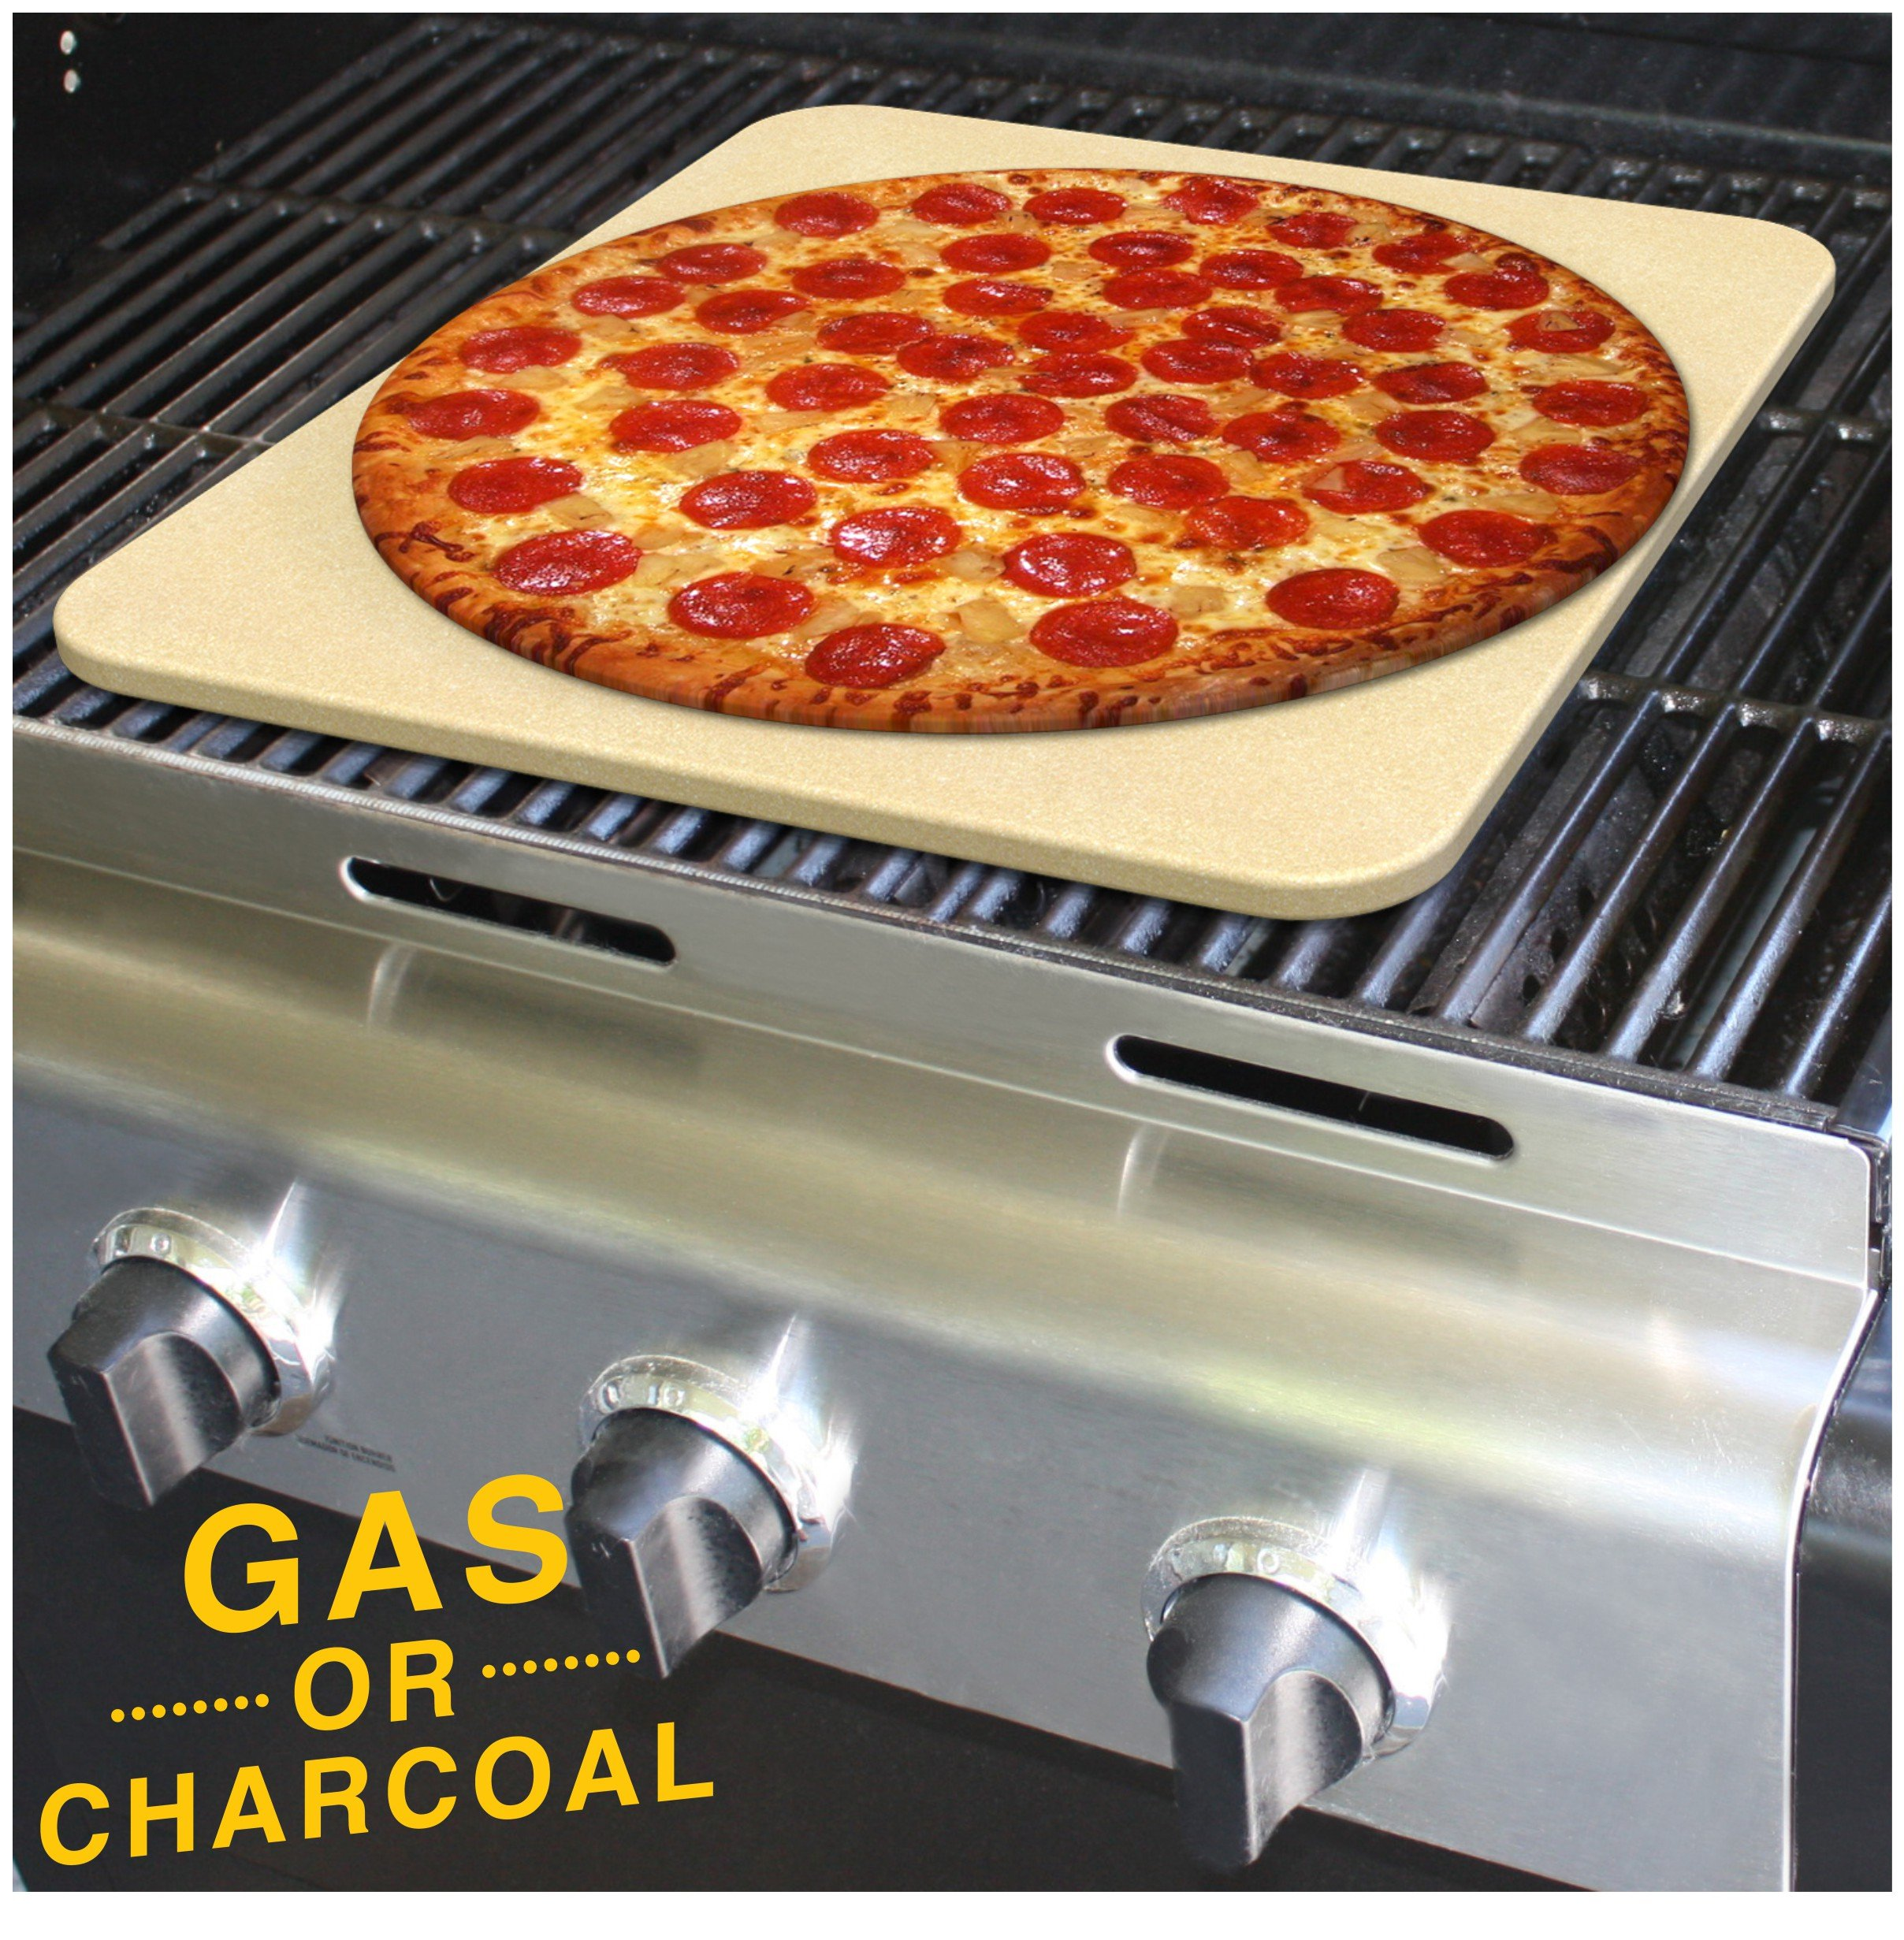 Pizza Stone for Best Crispy Crust Pizza, Only Stoneware with Thermarite (Engineered Tuff Cordierite). Durable, Certified Safe, Ovens & Grills 14 x 16 Rectangular, Bonus Recipe Ebook & Free Scraper by CastElegance (Image #4)